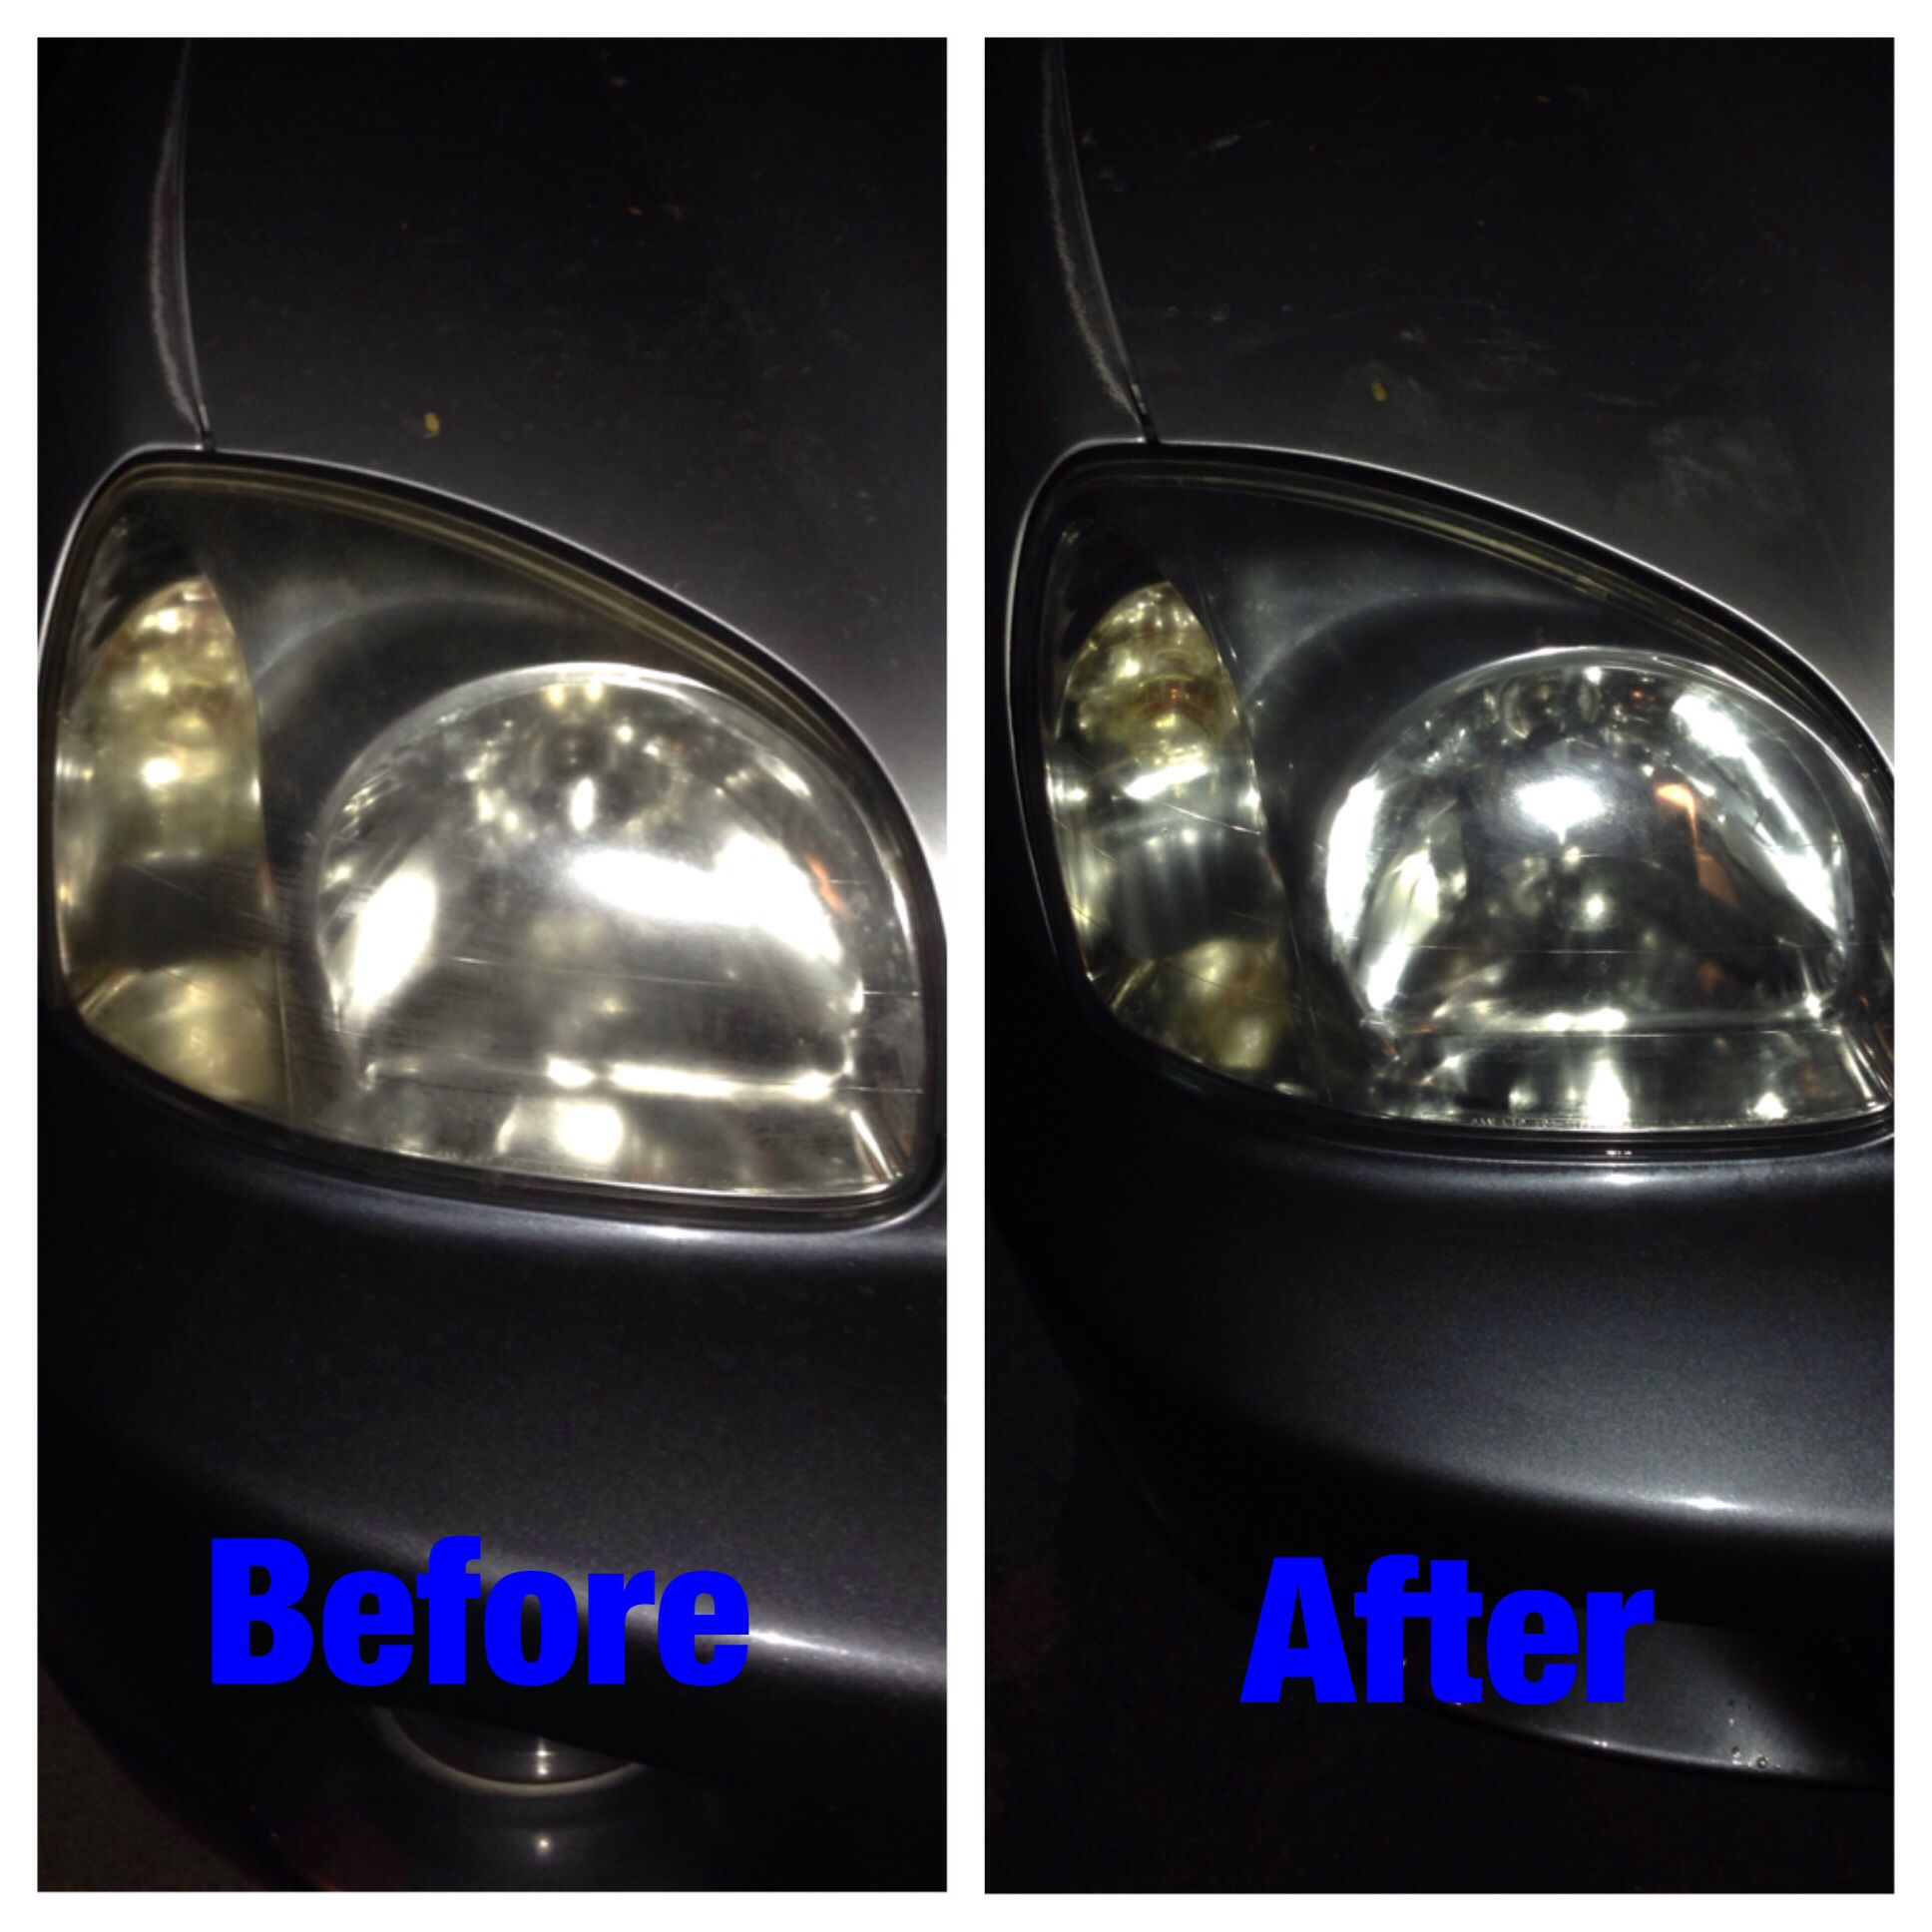 This is how the toothpaste on headlights trick worked for